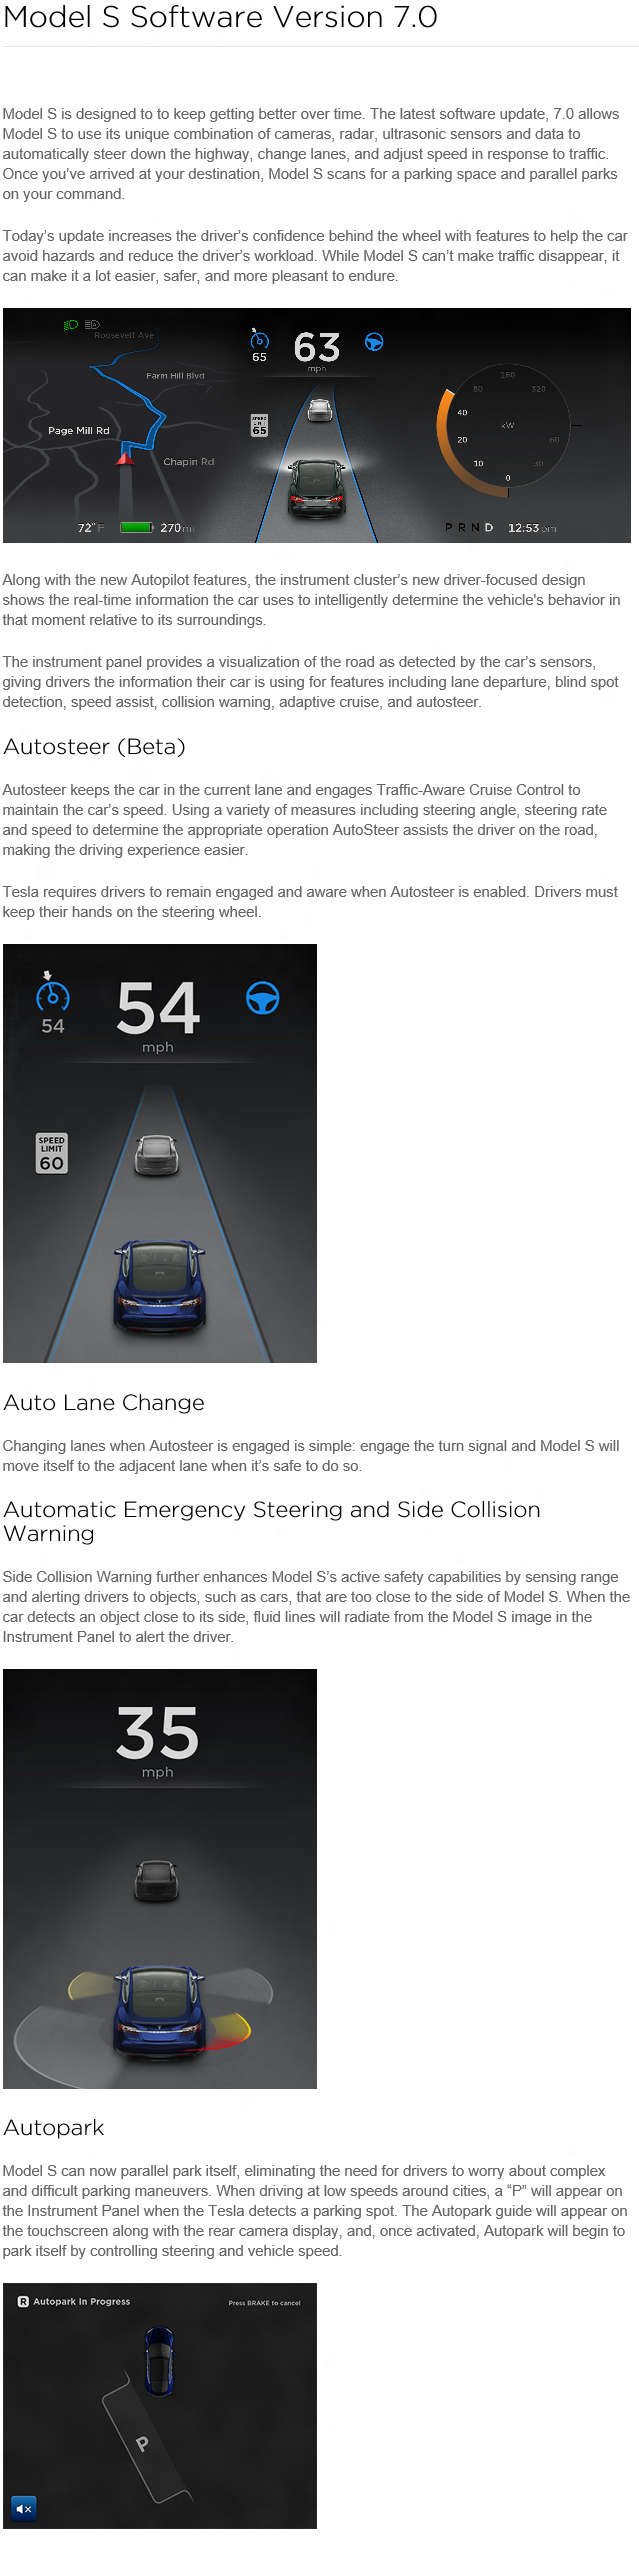 Tesla Model S Version 7.0 Release Notes